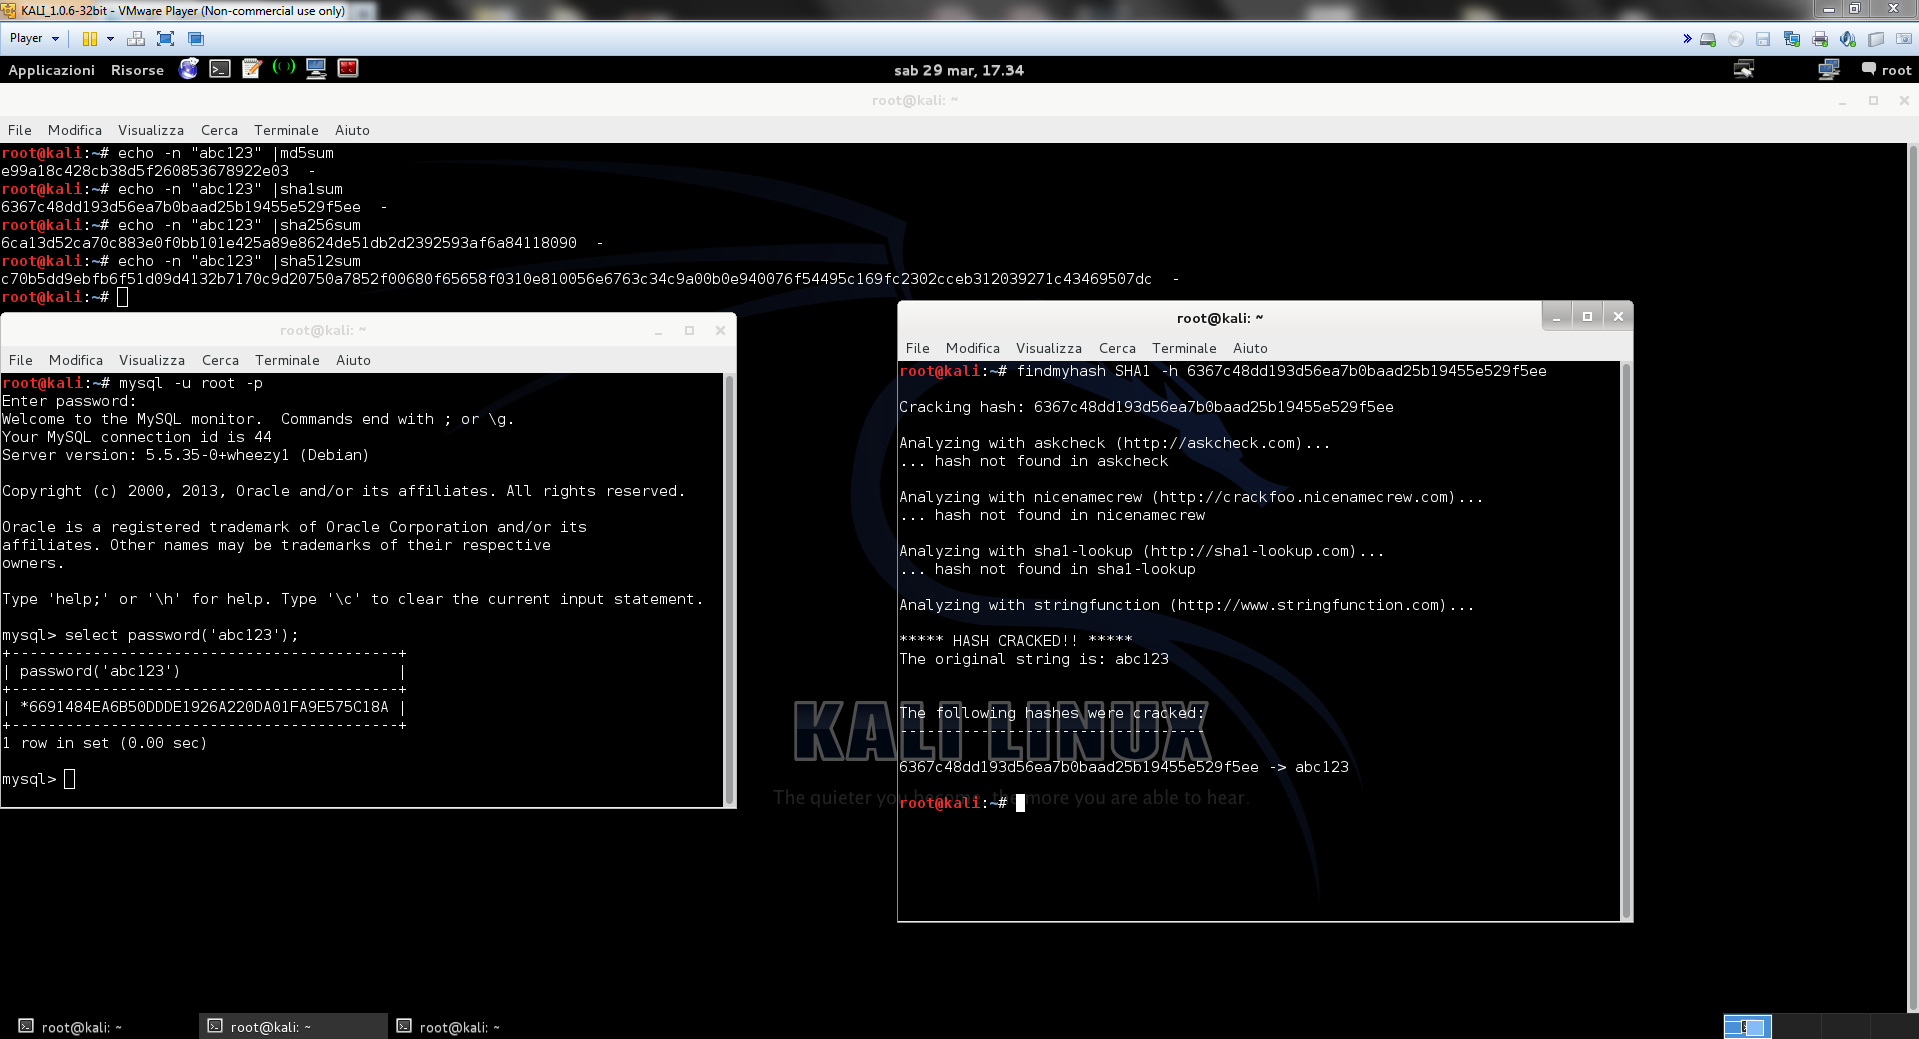 cracking-md5-phpbb-mysql-and-sha1-passwords-with-hashcat-on-kali-linux-blackmore-ops-20-zimmaro